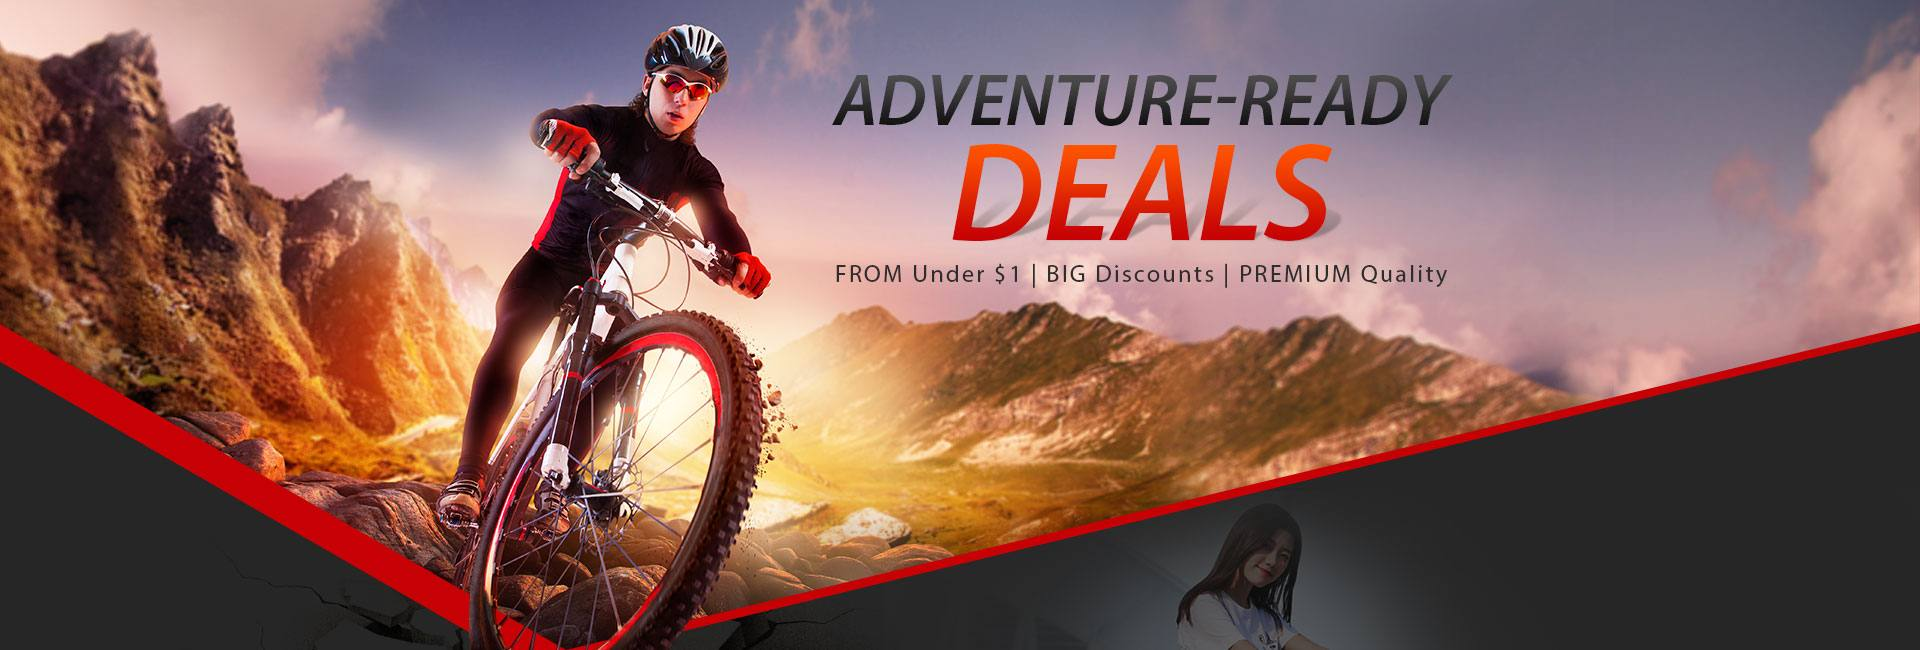 The Outdoor Sports Advanture Ready Deals with Coupon from Under $1